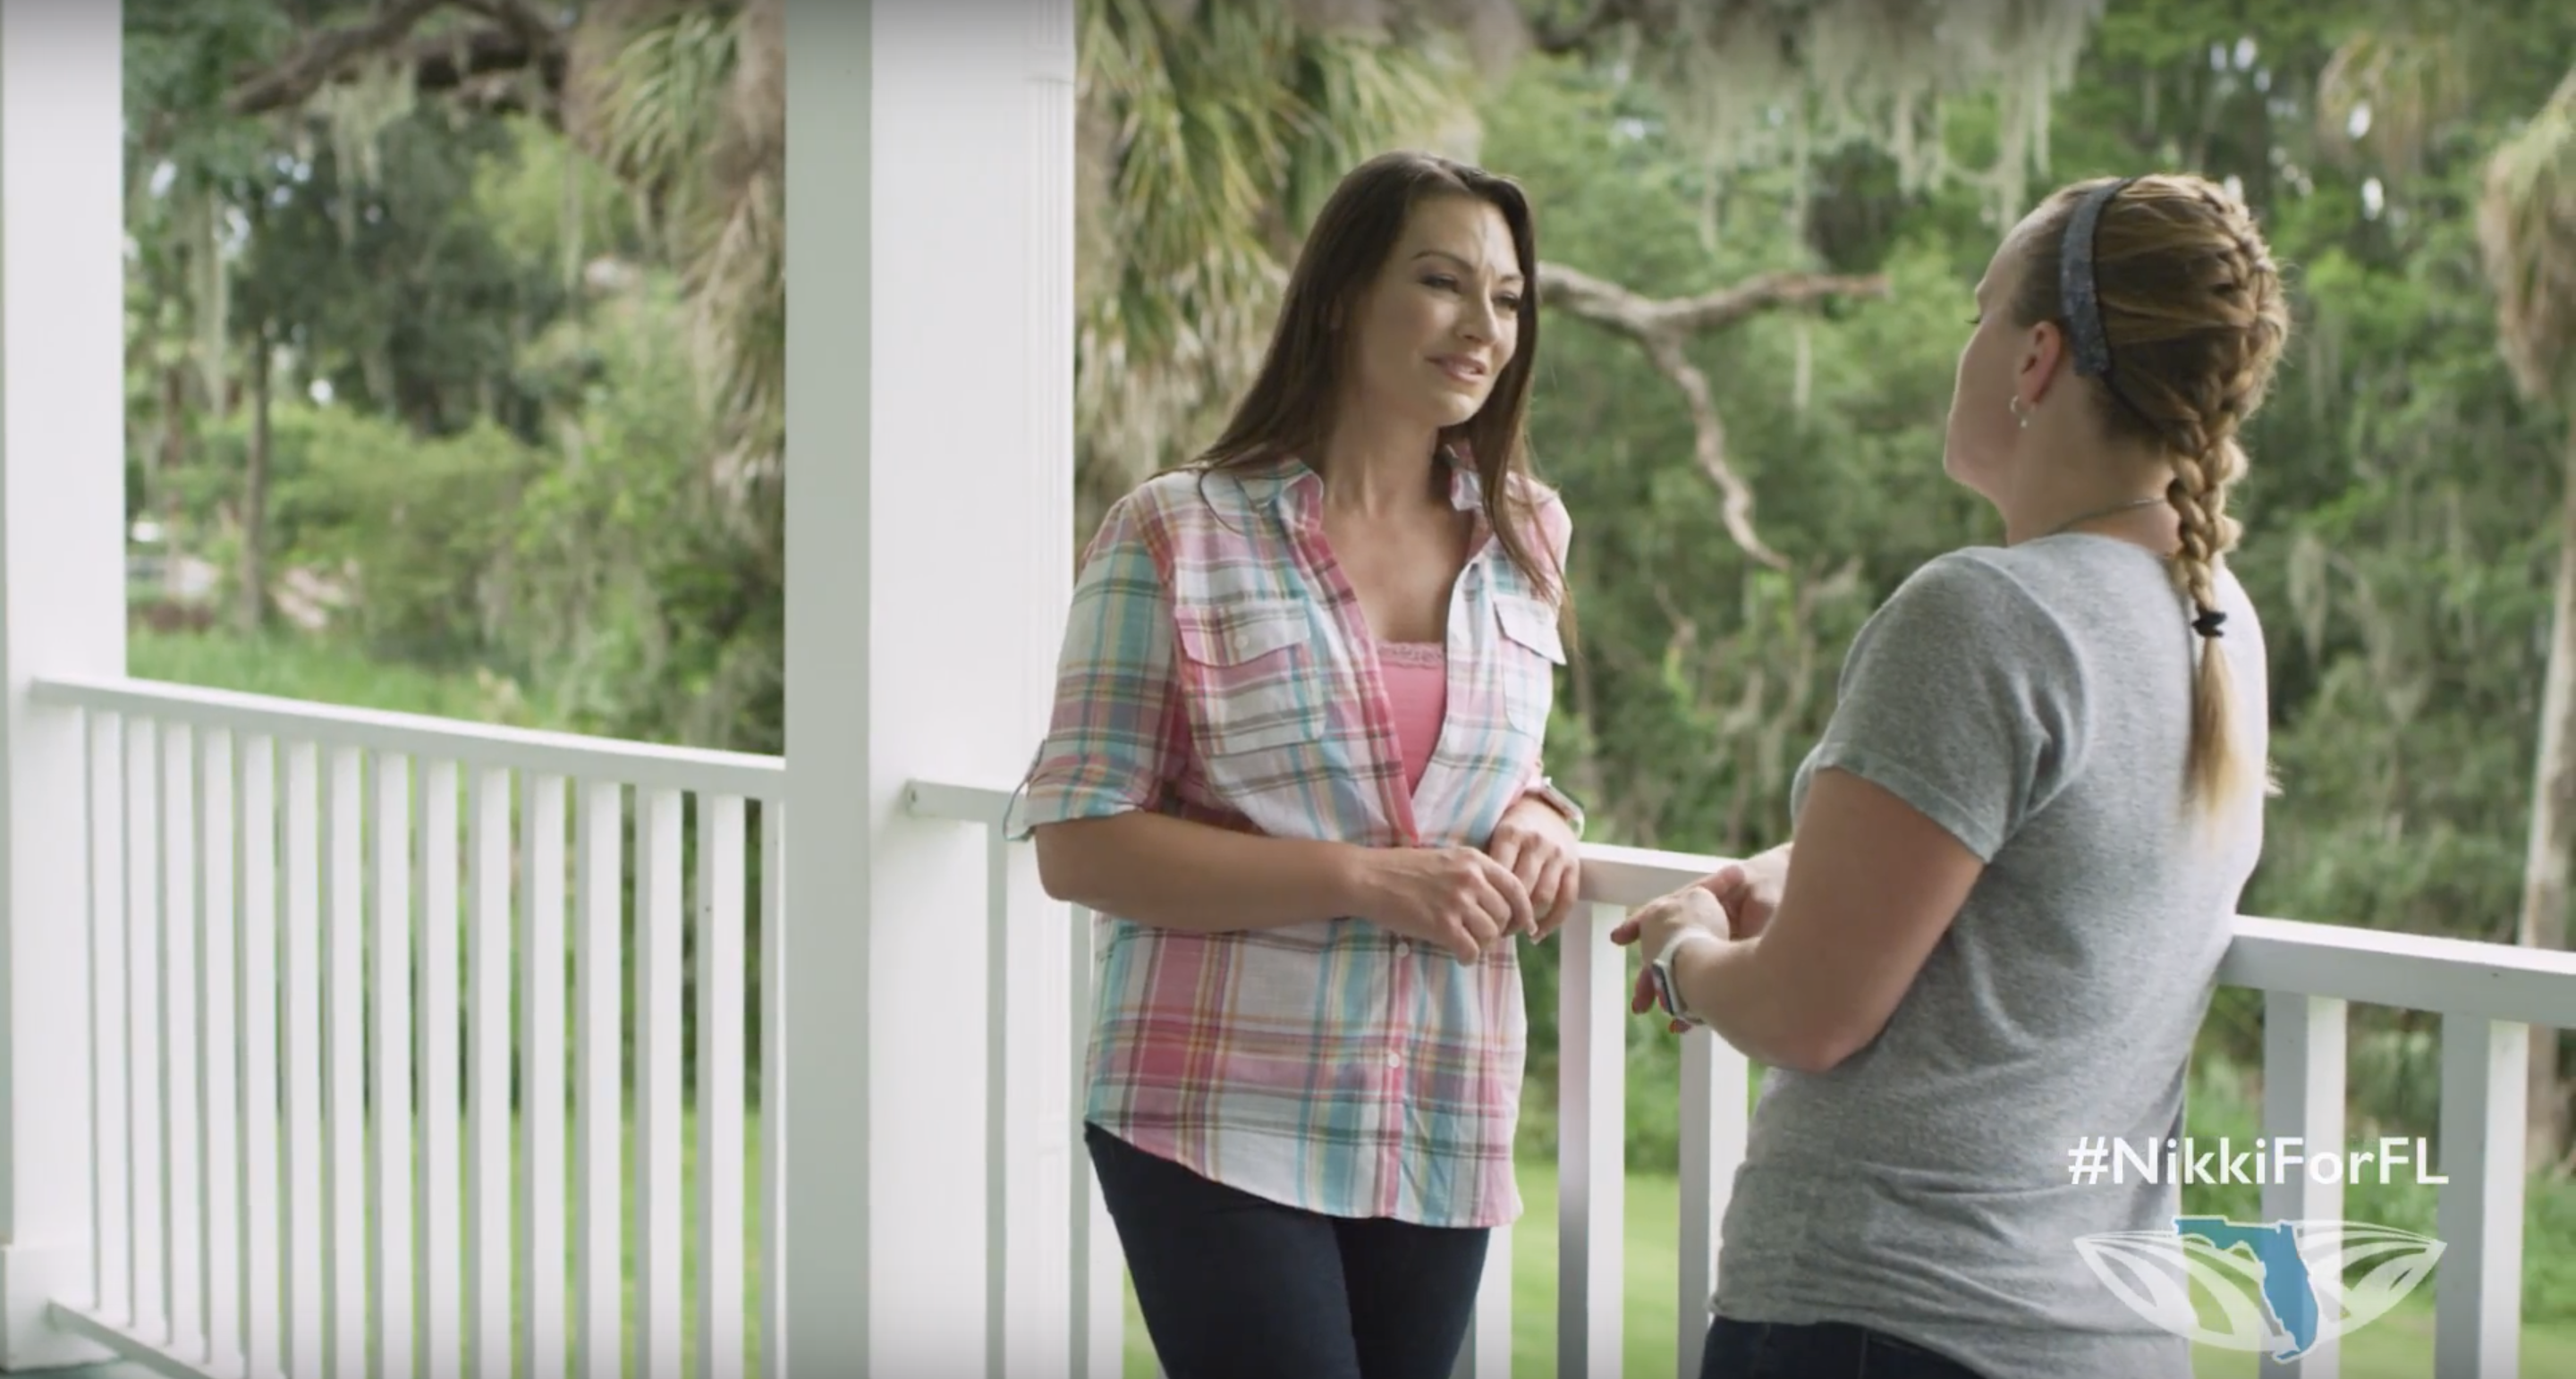 Nikki Fried Enters Florida Agriculture Race